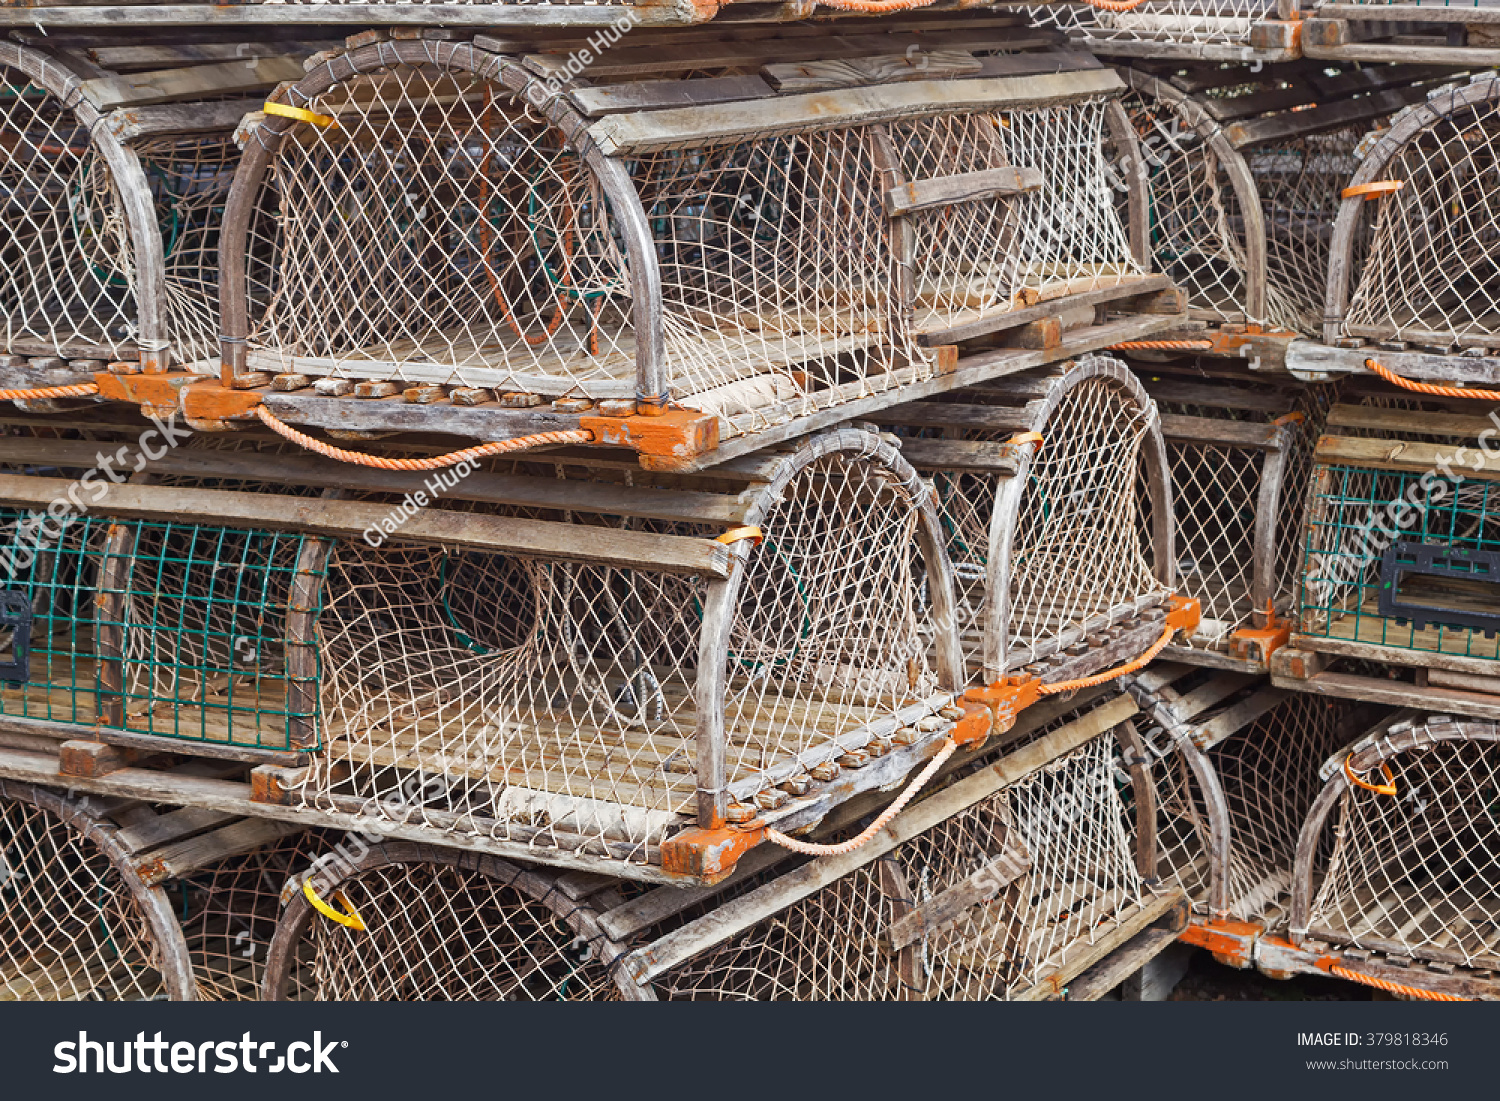 Lobster traps stacked on a pier in Sydney, Nova Scotia, Canada